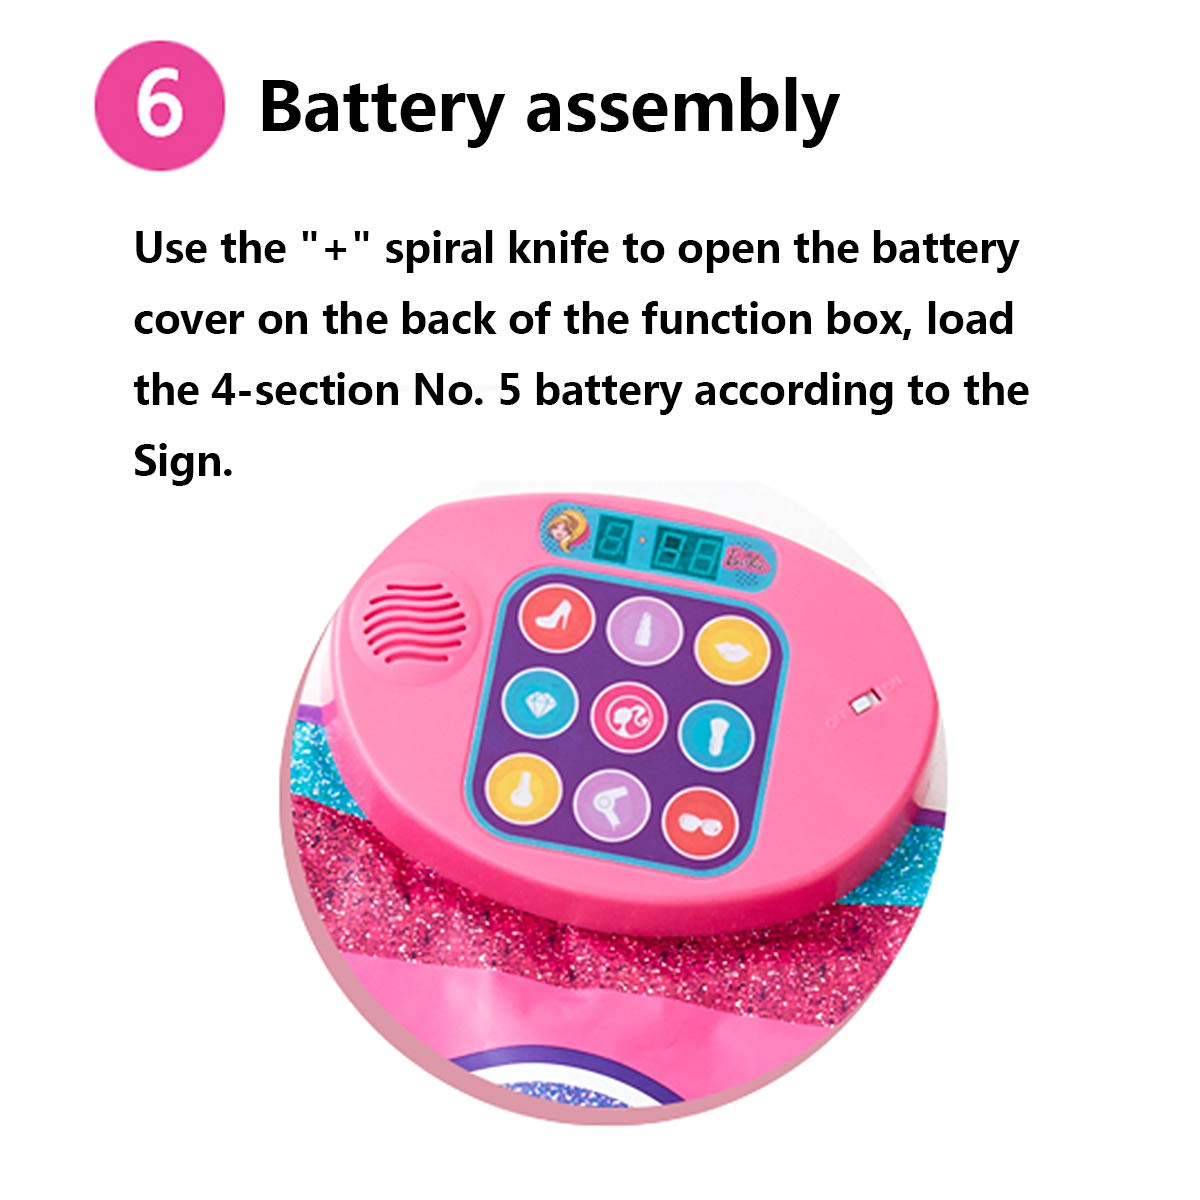 Color Dynamic Dance Mat, Children's Electronic Music Play Mat Ideal Gift and Toy Suitable for Children Over 3 Years Old,Pink by Eustoma (Image #6)